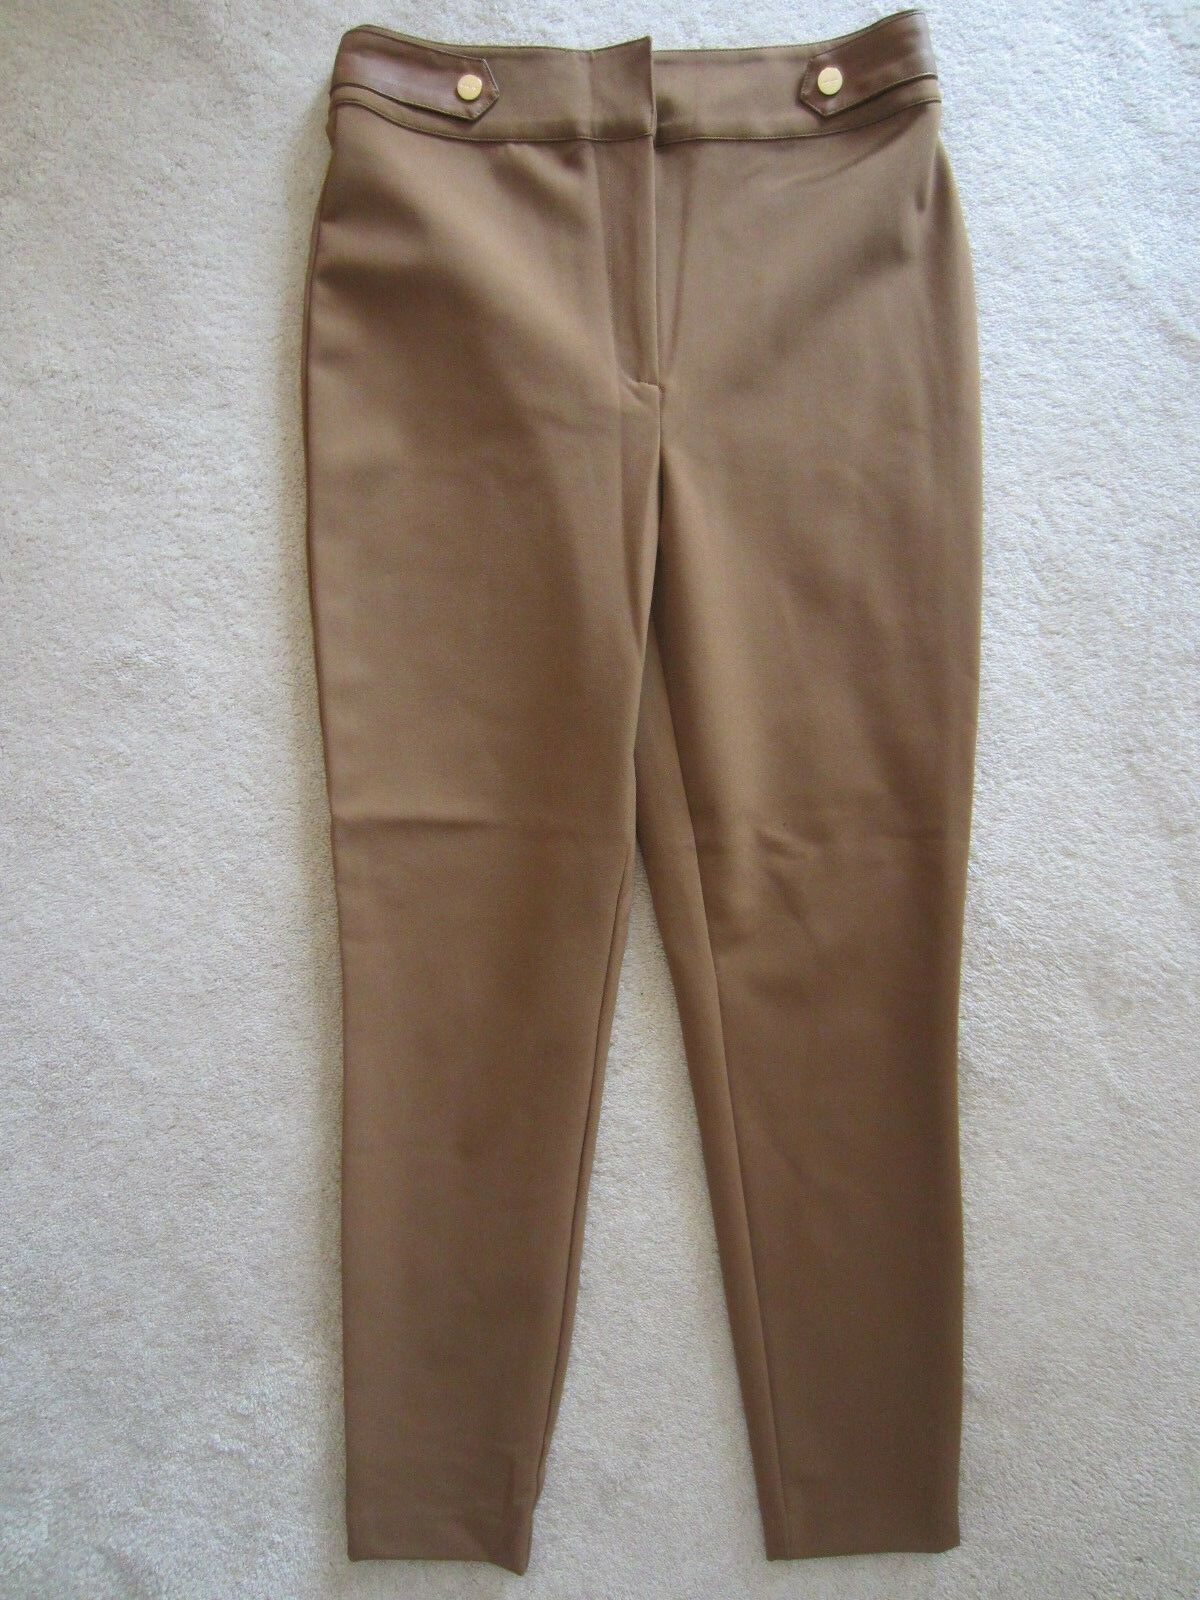 MARCIANO BY GUESS STRETCH BROWN SKINNY PANTS SLIM STRETCH SIZE 8 SIDE ZIP NEW